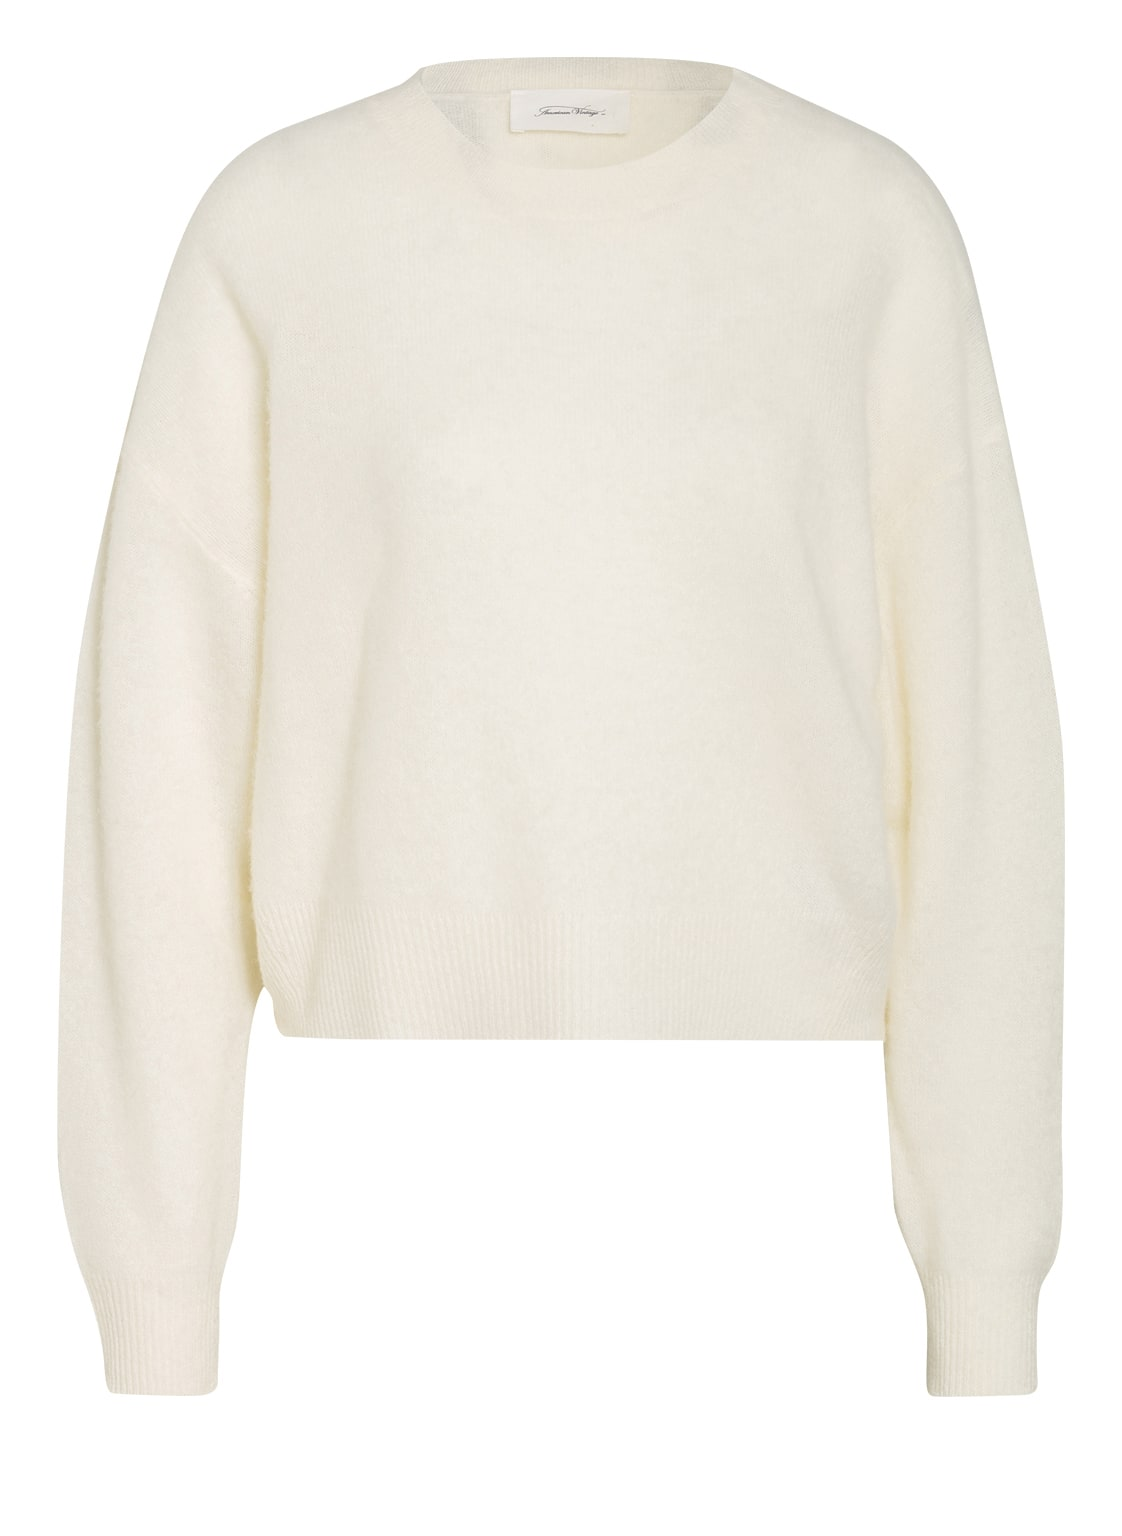 Image of American Vintage Cashmere-Pullover Koptown weiss